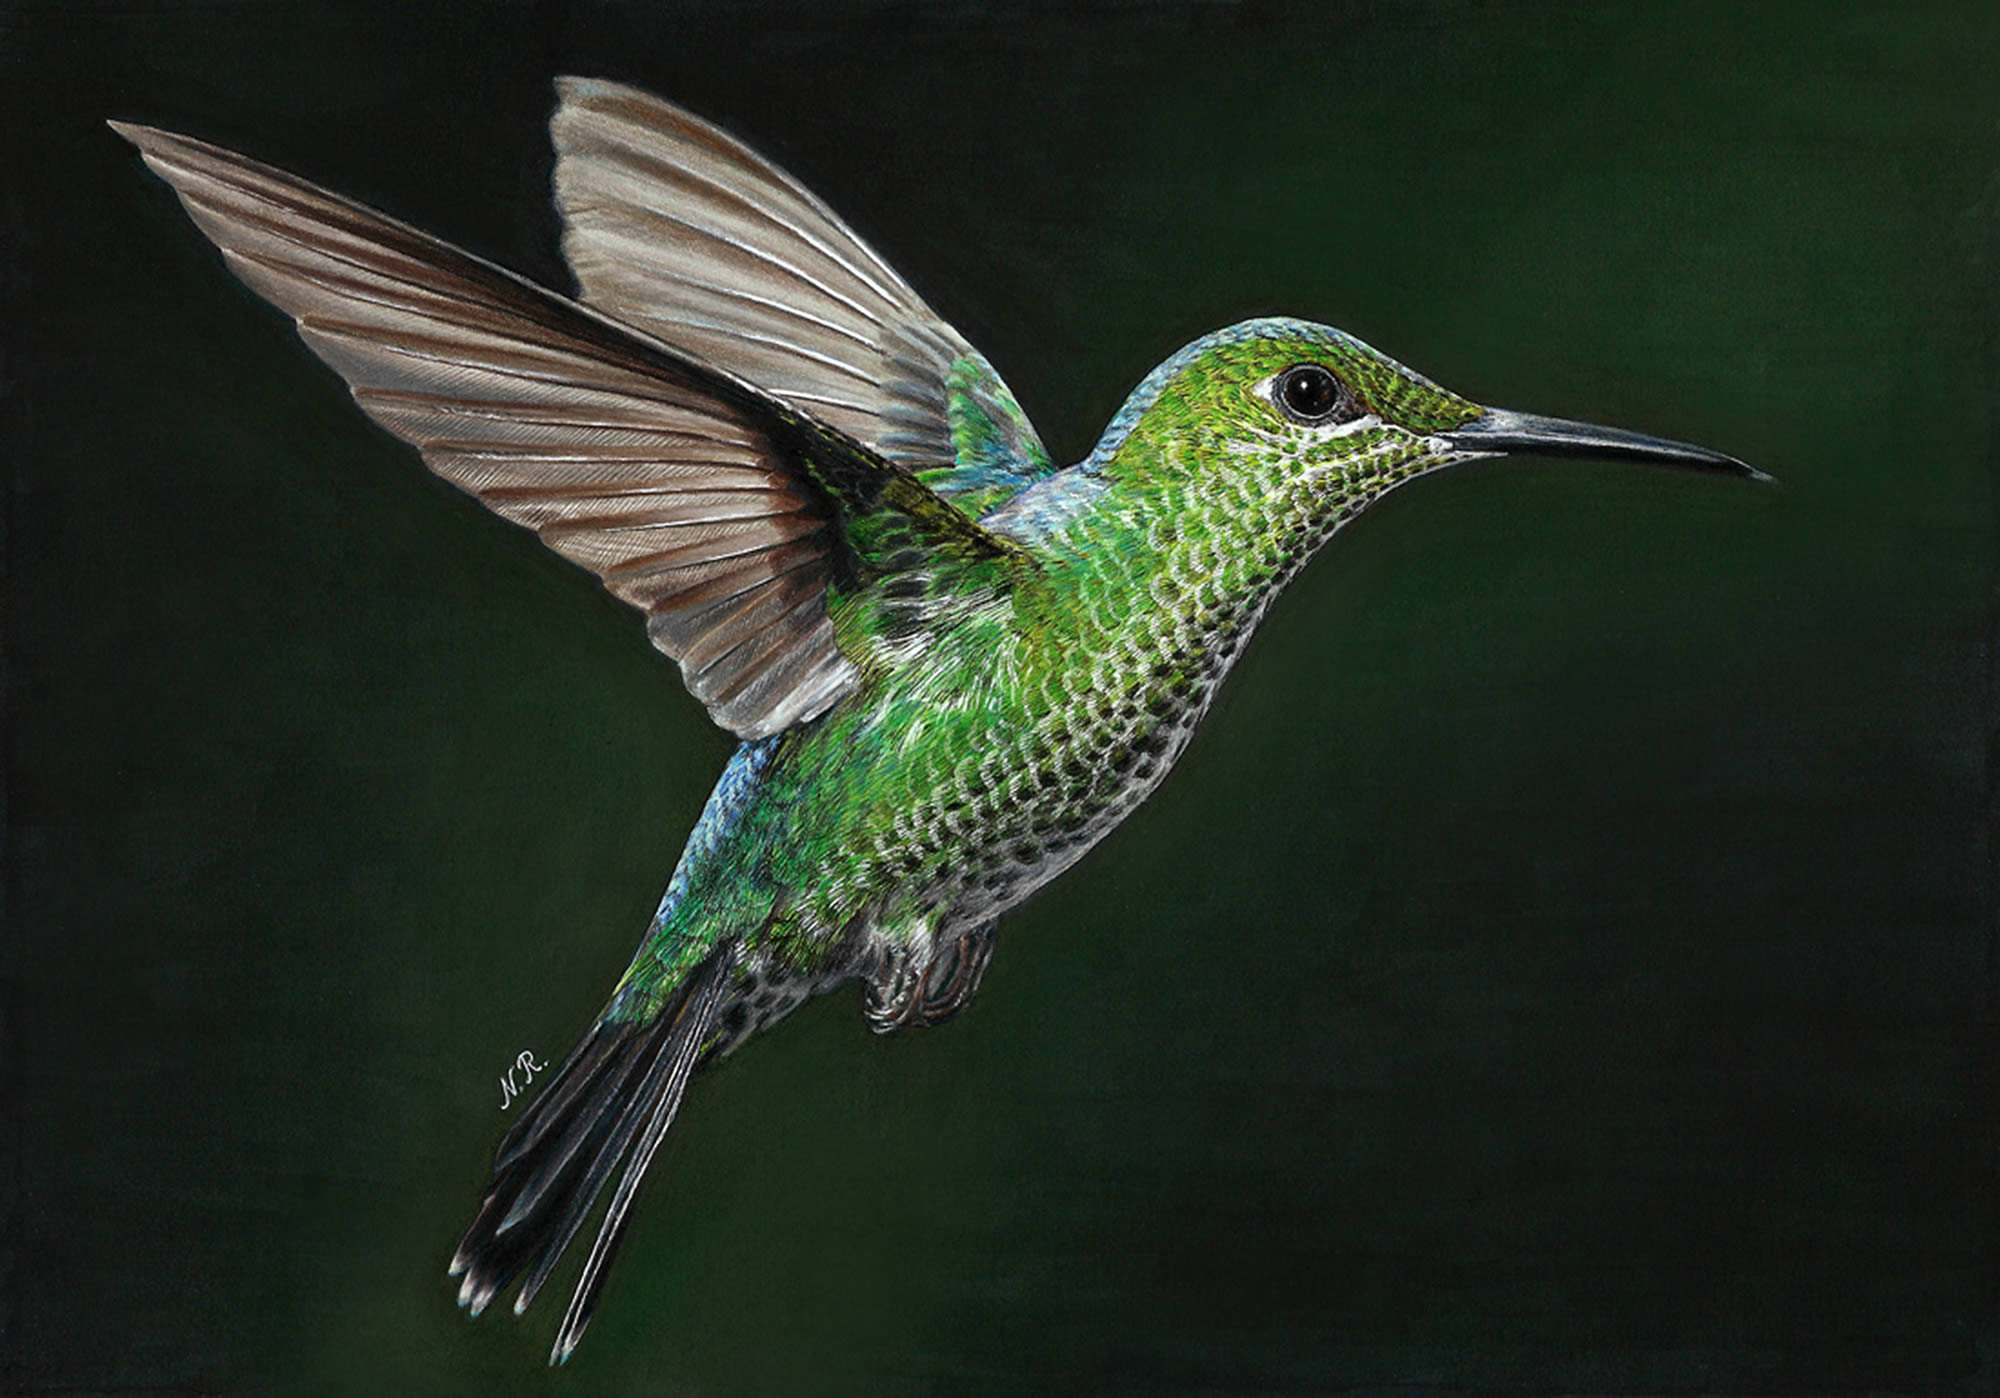 green and blue hummingbird, hyperrealistic drawing